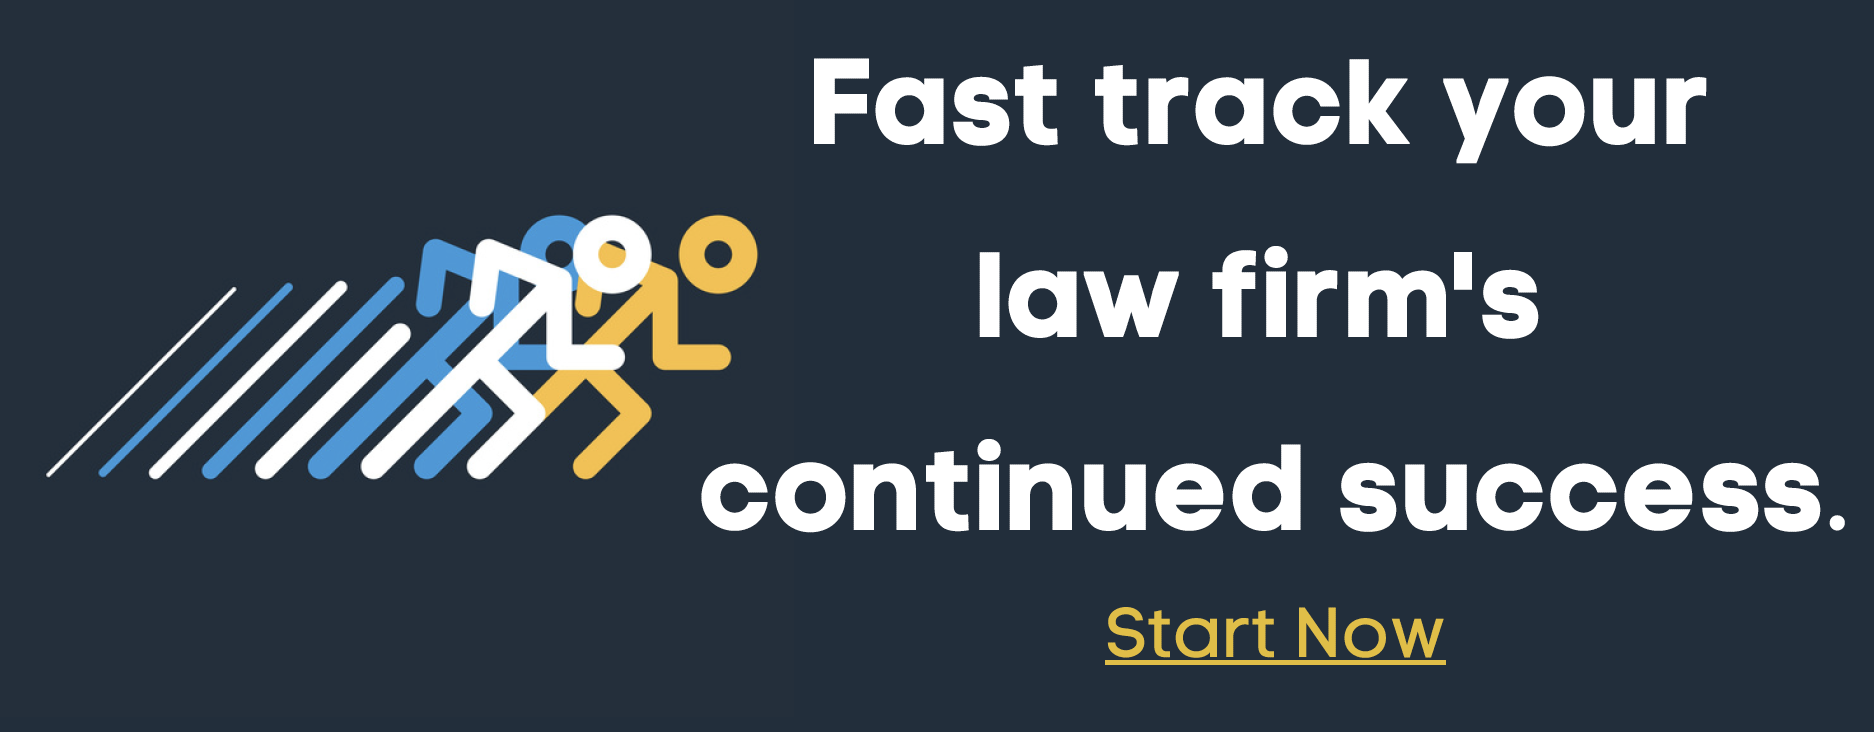 fast track law firm success